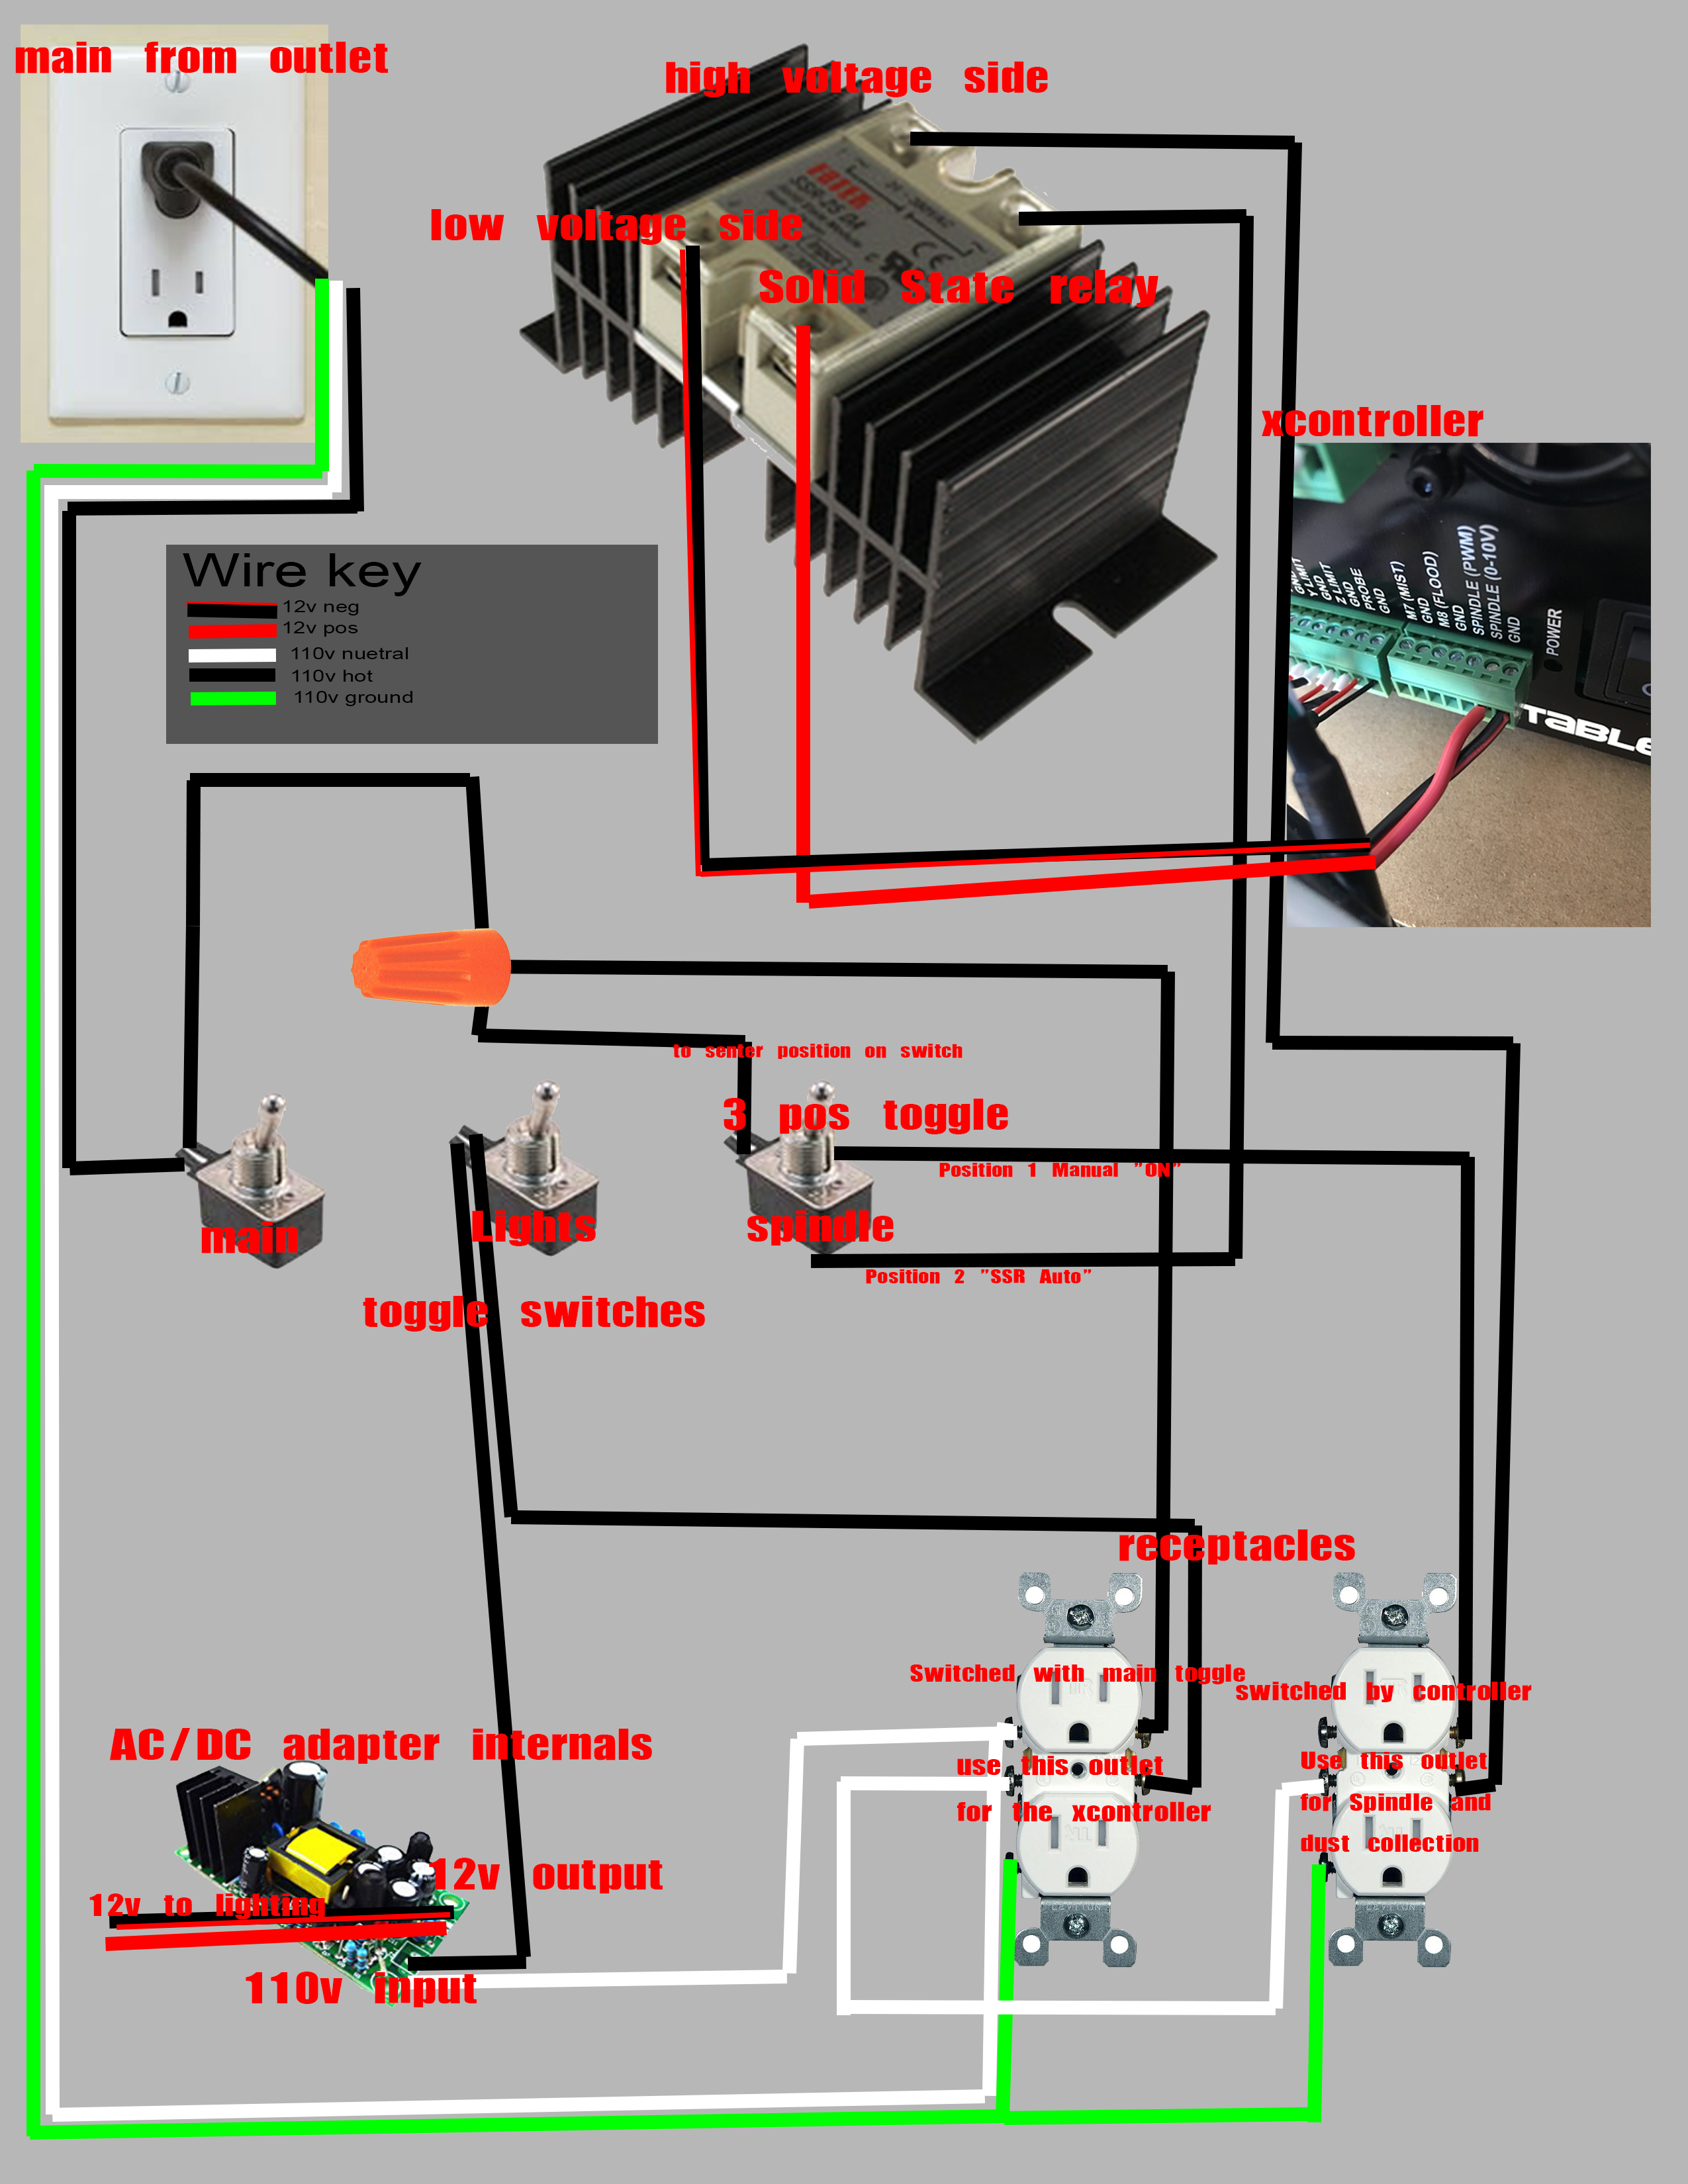 solid state relay wiring diagram virago 920 main power control box and